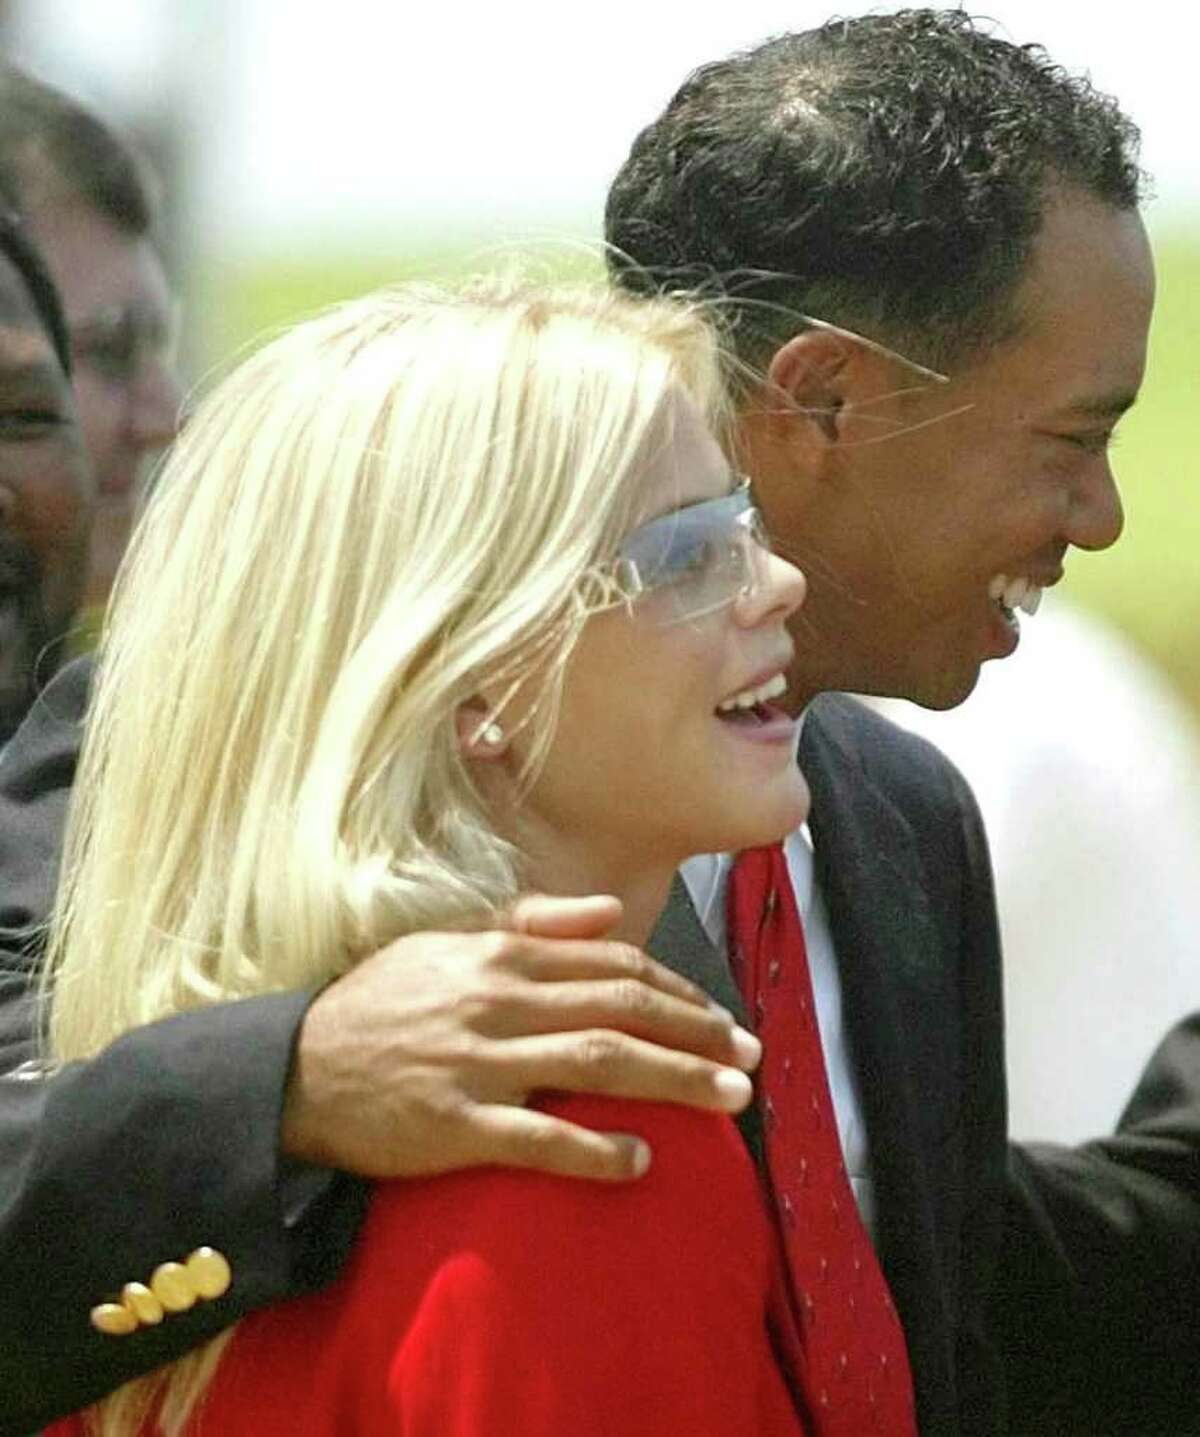 Tiger Woods and his girlfriend Elin Nordegren during the opening ceremony of the Presidents Cup 2003 Golf Tournament at the Fancourt Golf Estate in George, South Africa on Nov. 20, 2003 file photo. Woods and Nordegren were engaged after the tournament (AP Photo/Obed Zilwa, file)